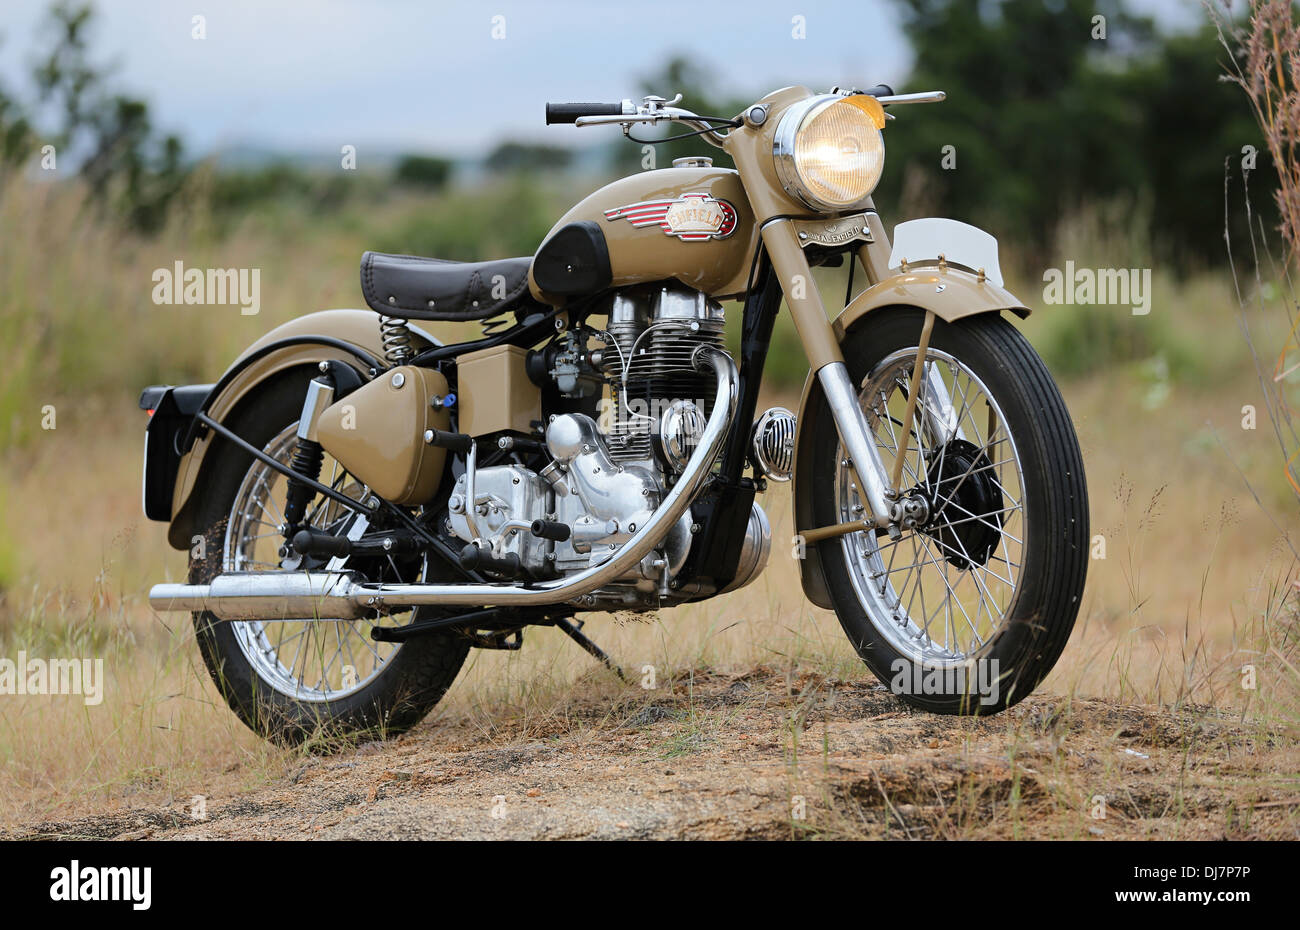 Royal enfield bullet pictures -  Royal Enfield Bullet Vintage 1966 G2 Engine India Stock Photo